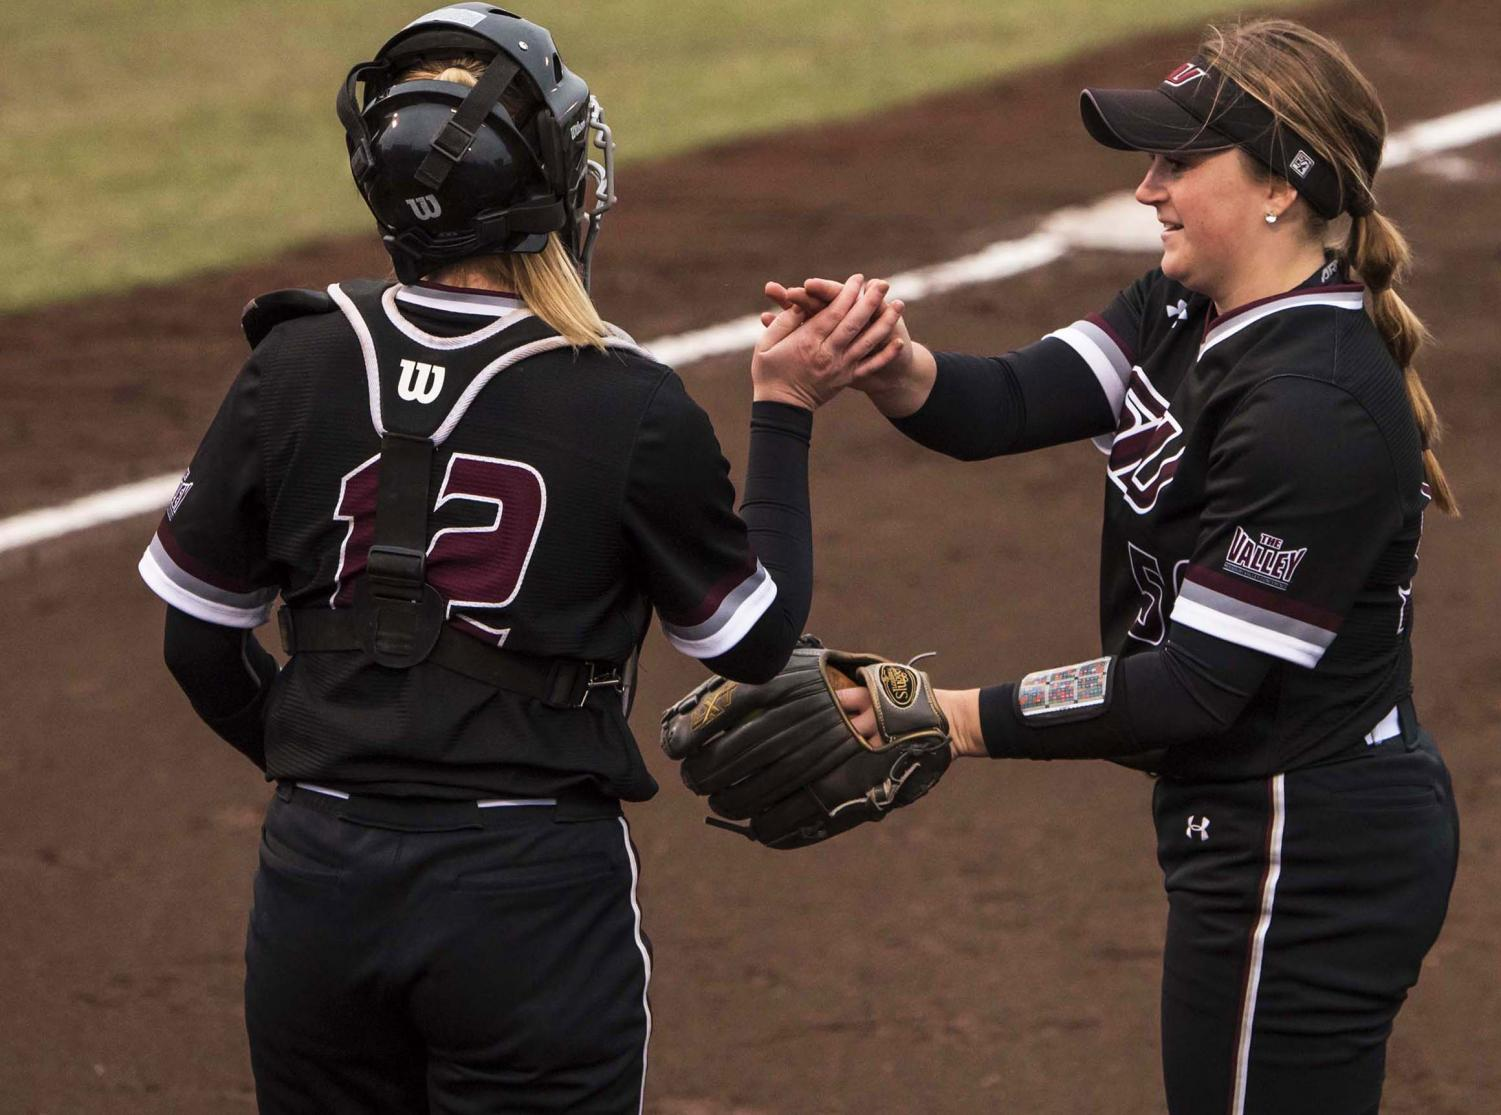 Saluki+catcher+Shelby+Hodo+and+pitcher+Claire+Miller+high+five+on+Friday%2C+Feb.+22%2C+2019+during+the+Salukis+3-0+win+against+Ohio+University+at+Charlotte+West+Stadium.+